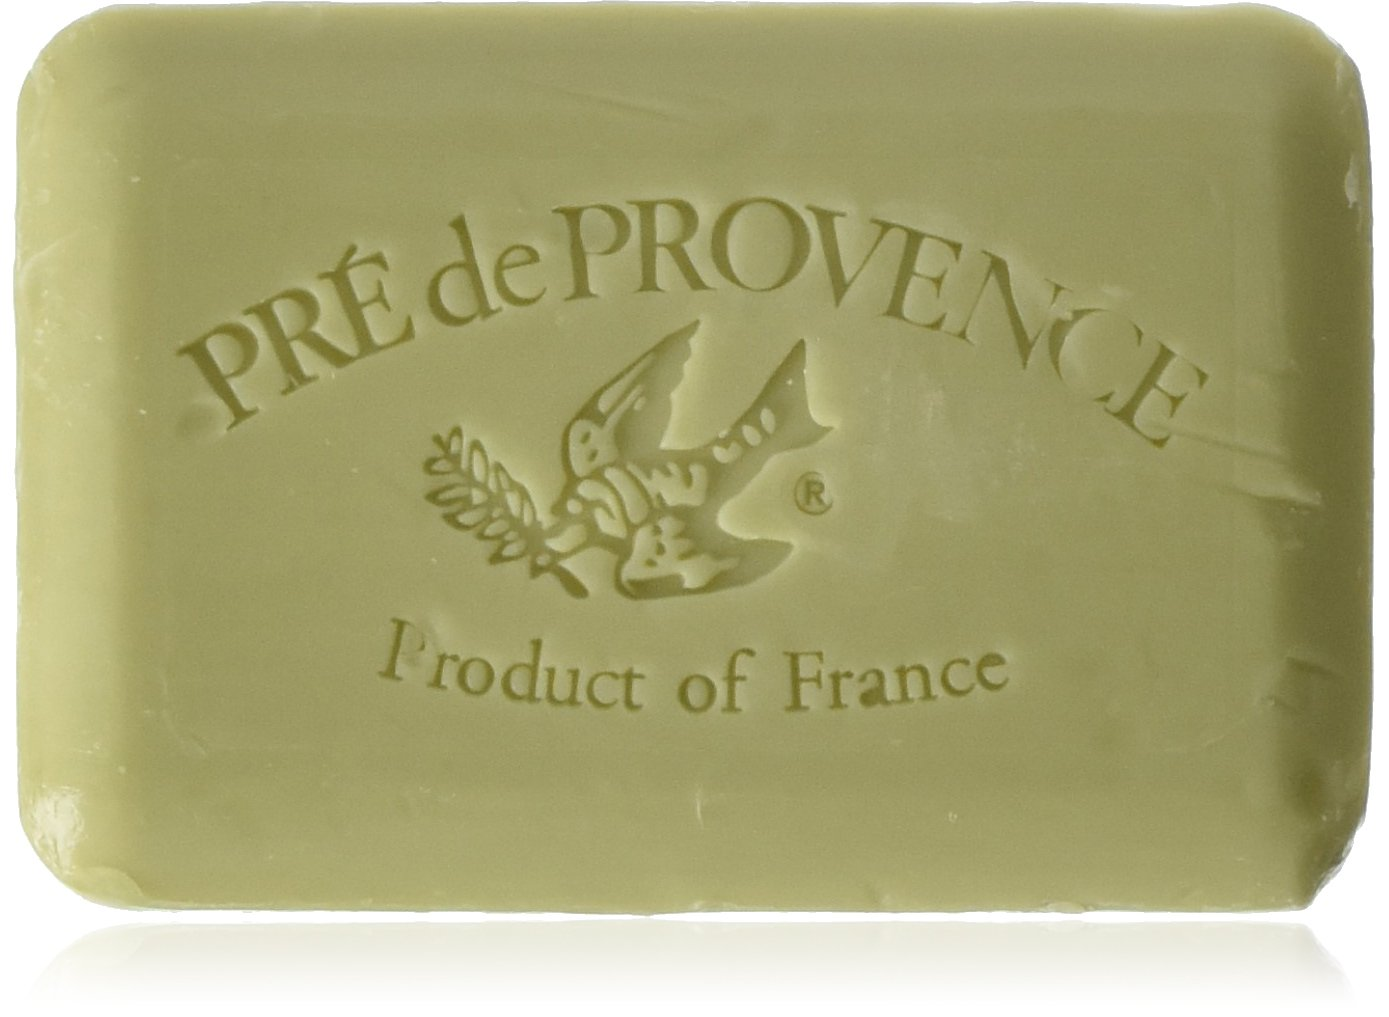 Pre de Provence Artisanal French Soap Bar Enriched with Shea Butter, Quad-Milled For A Smooth & Rich Lather (250 grams) - Green Tea